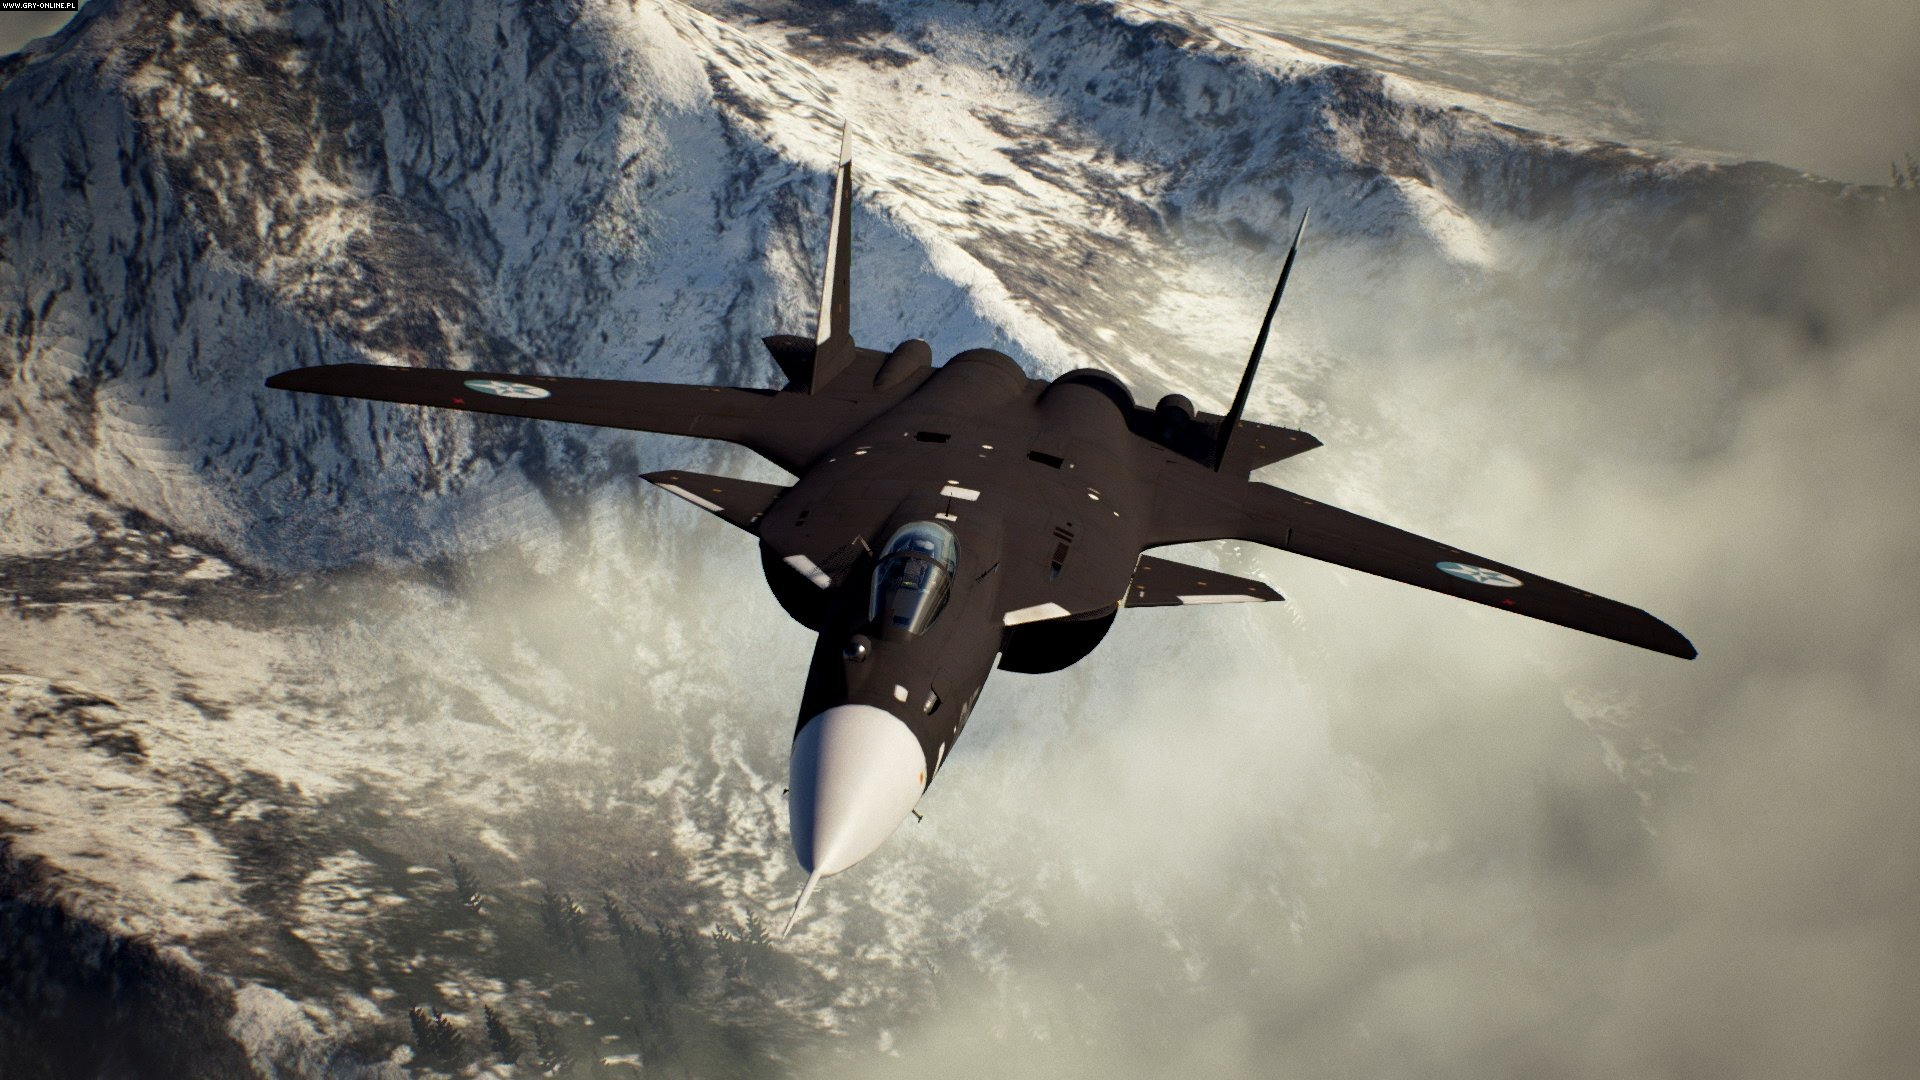 Ace Combat 7: Skies Unknown PC, PS4, XONE Games Image 43/249, Project Aces, Bandai Namco Entertainment